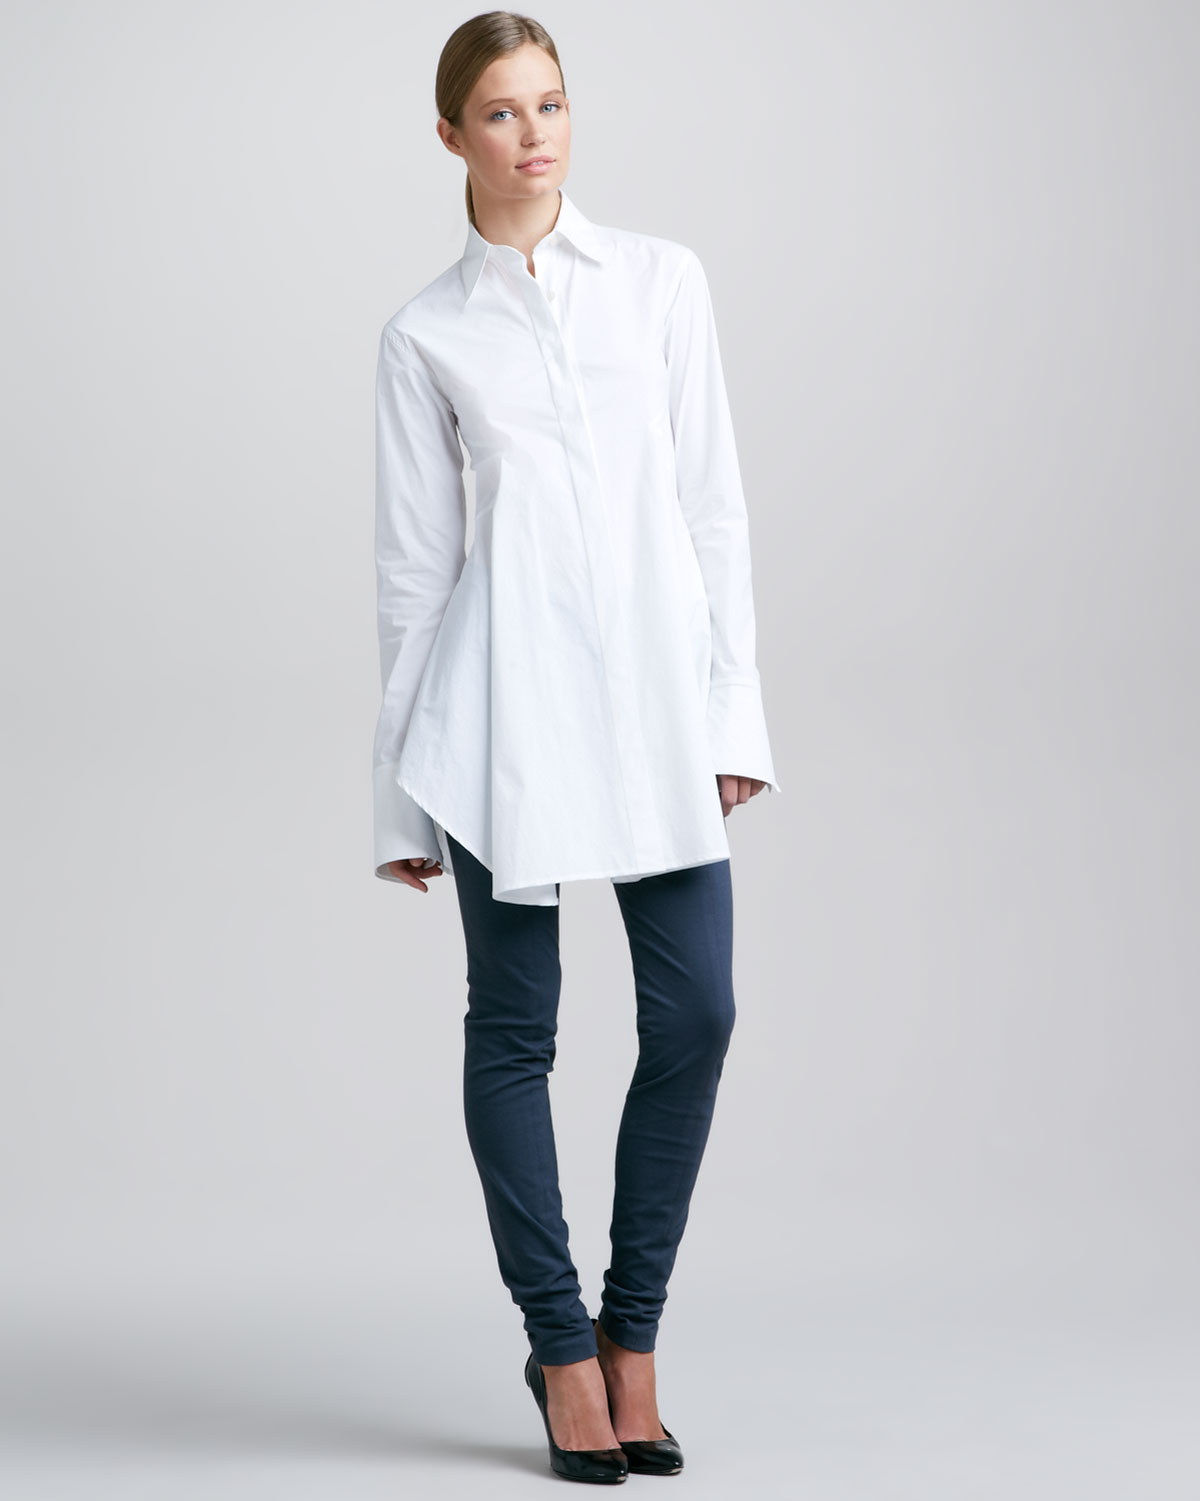 Donna karan Easy Shirt White in White | Lyst